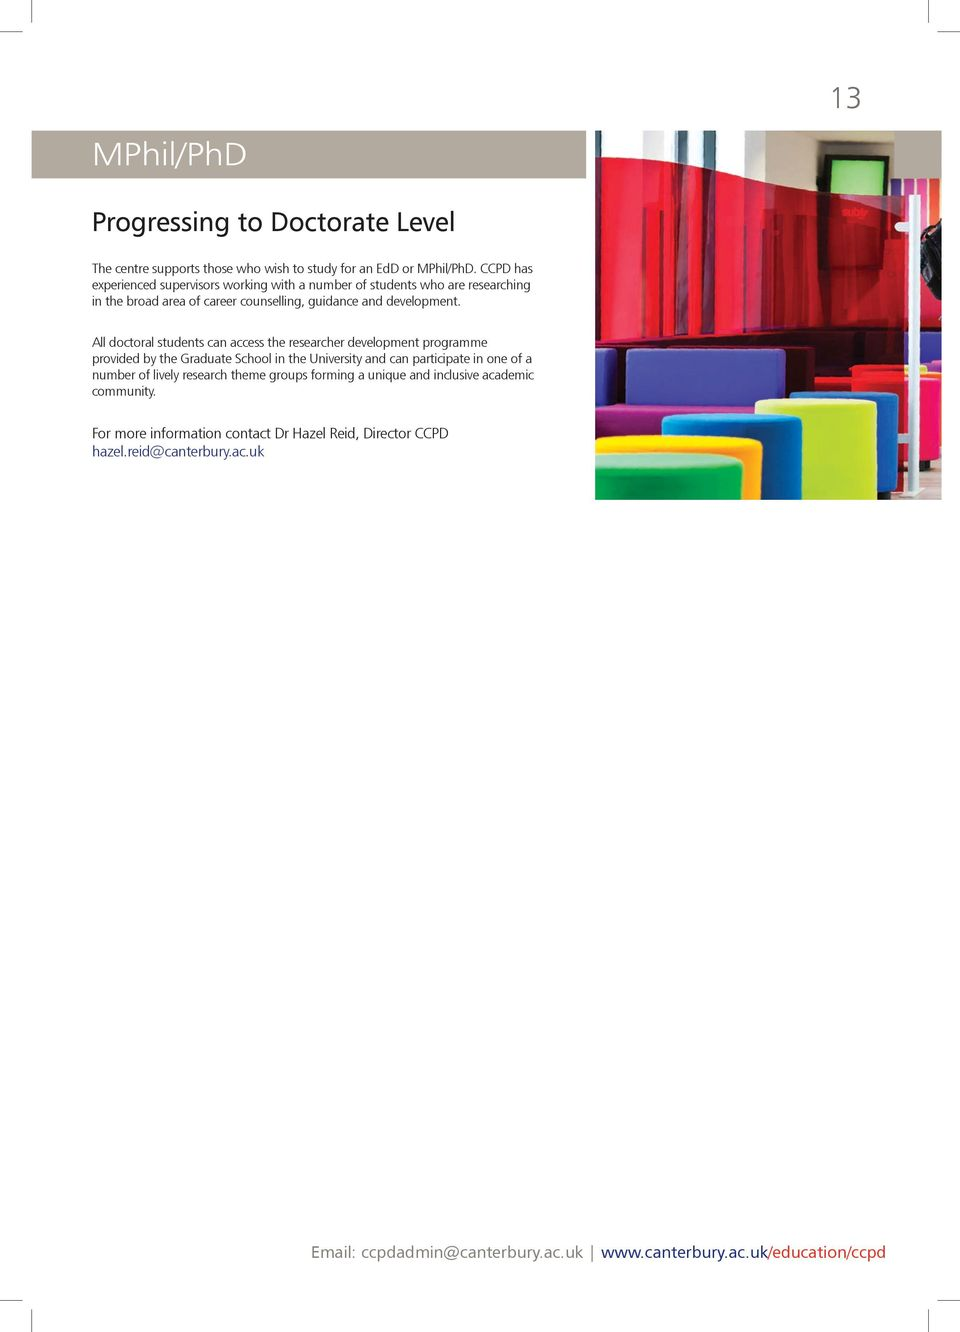 All doctoral students can access the researcher development programme provided by the Graduate School in the University and can participate in one of a number of